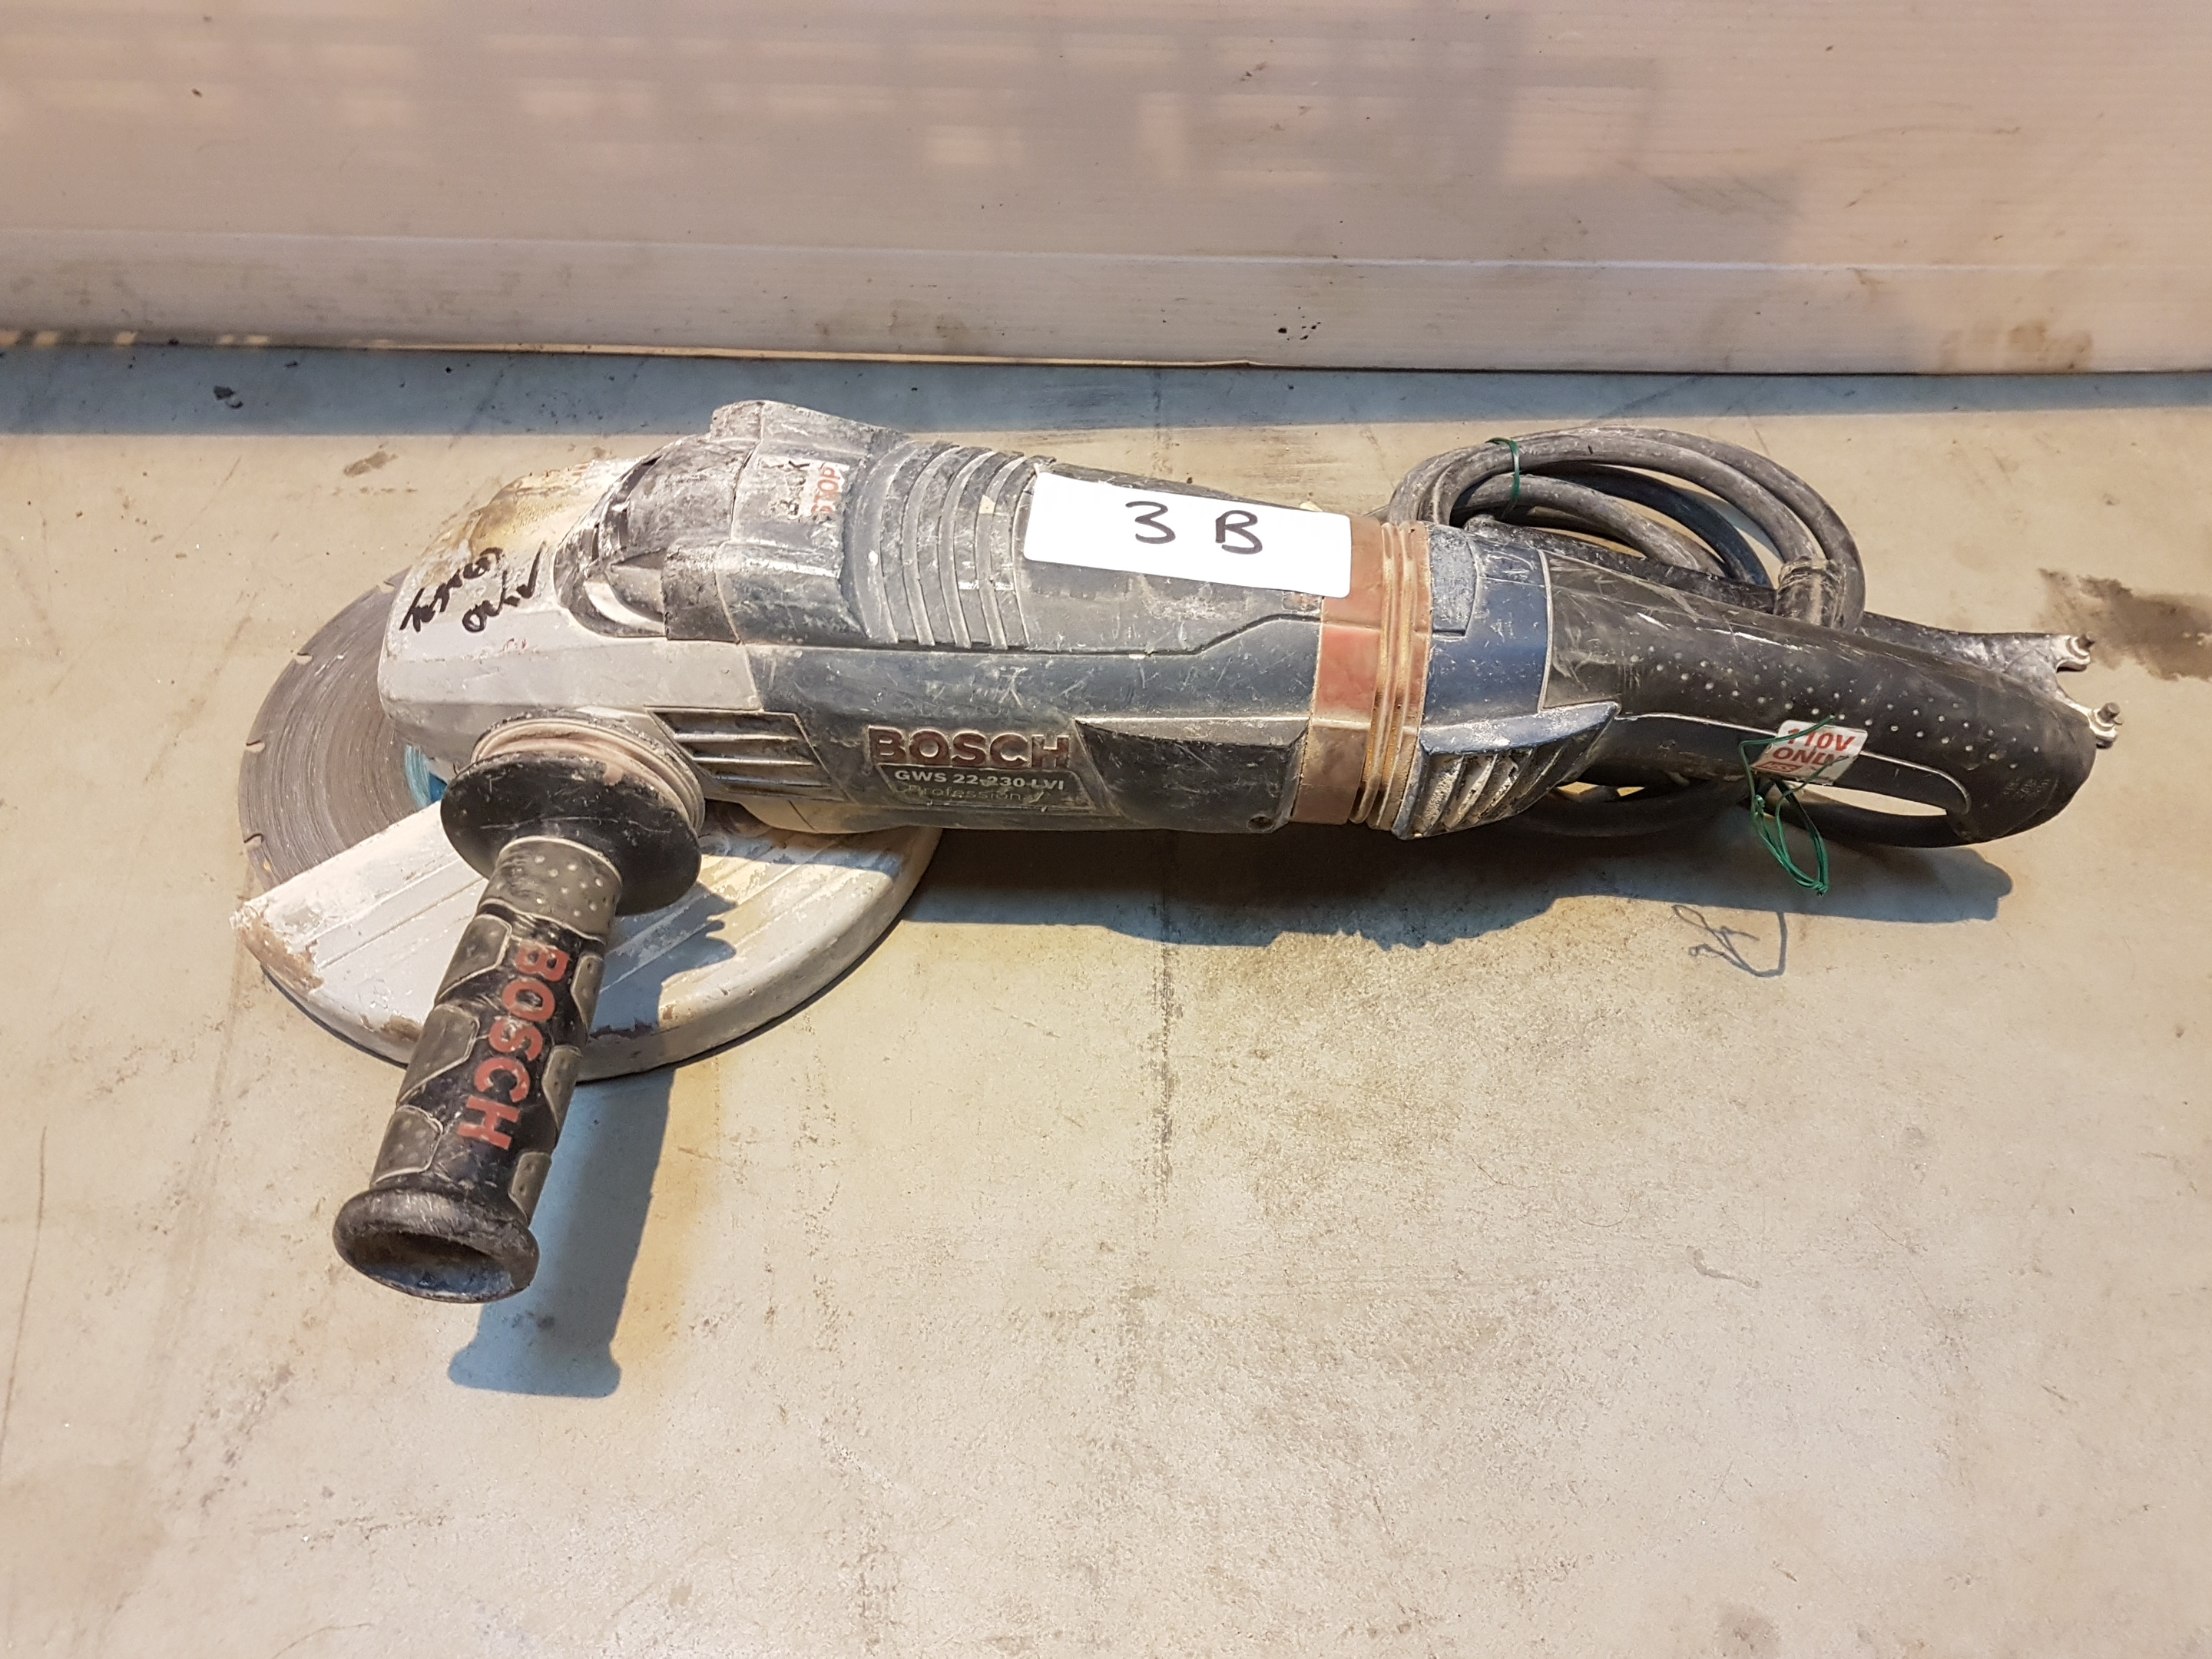 Lot 3 - Bosch ANGLE GRINDER 230MM 743P6266, working